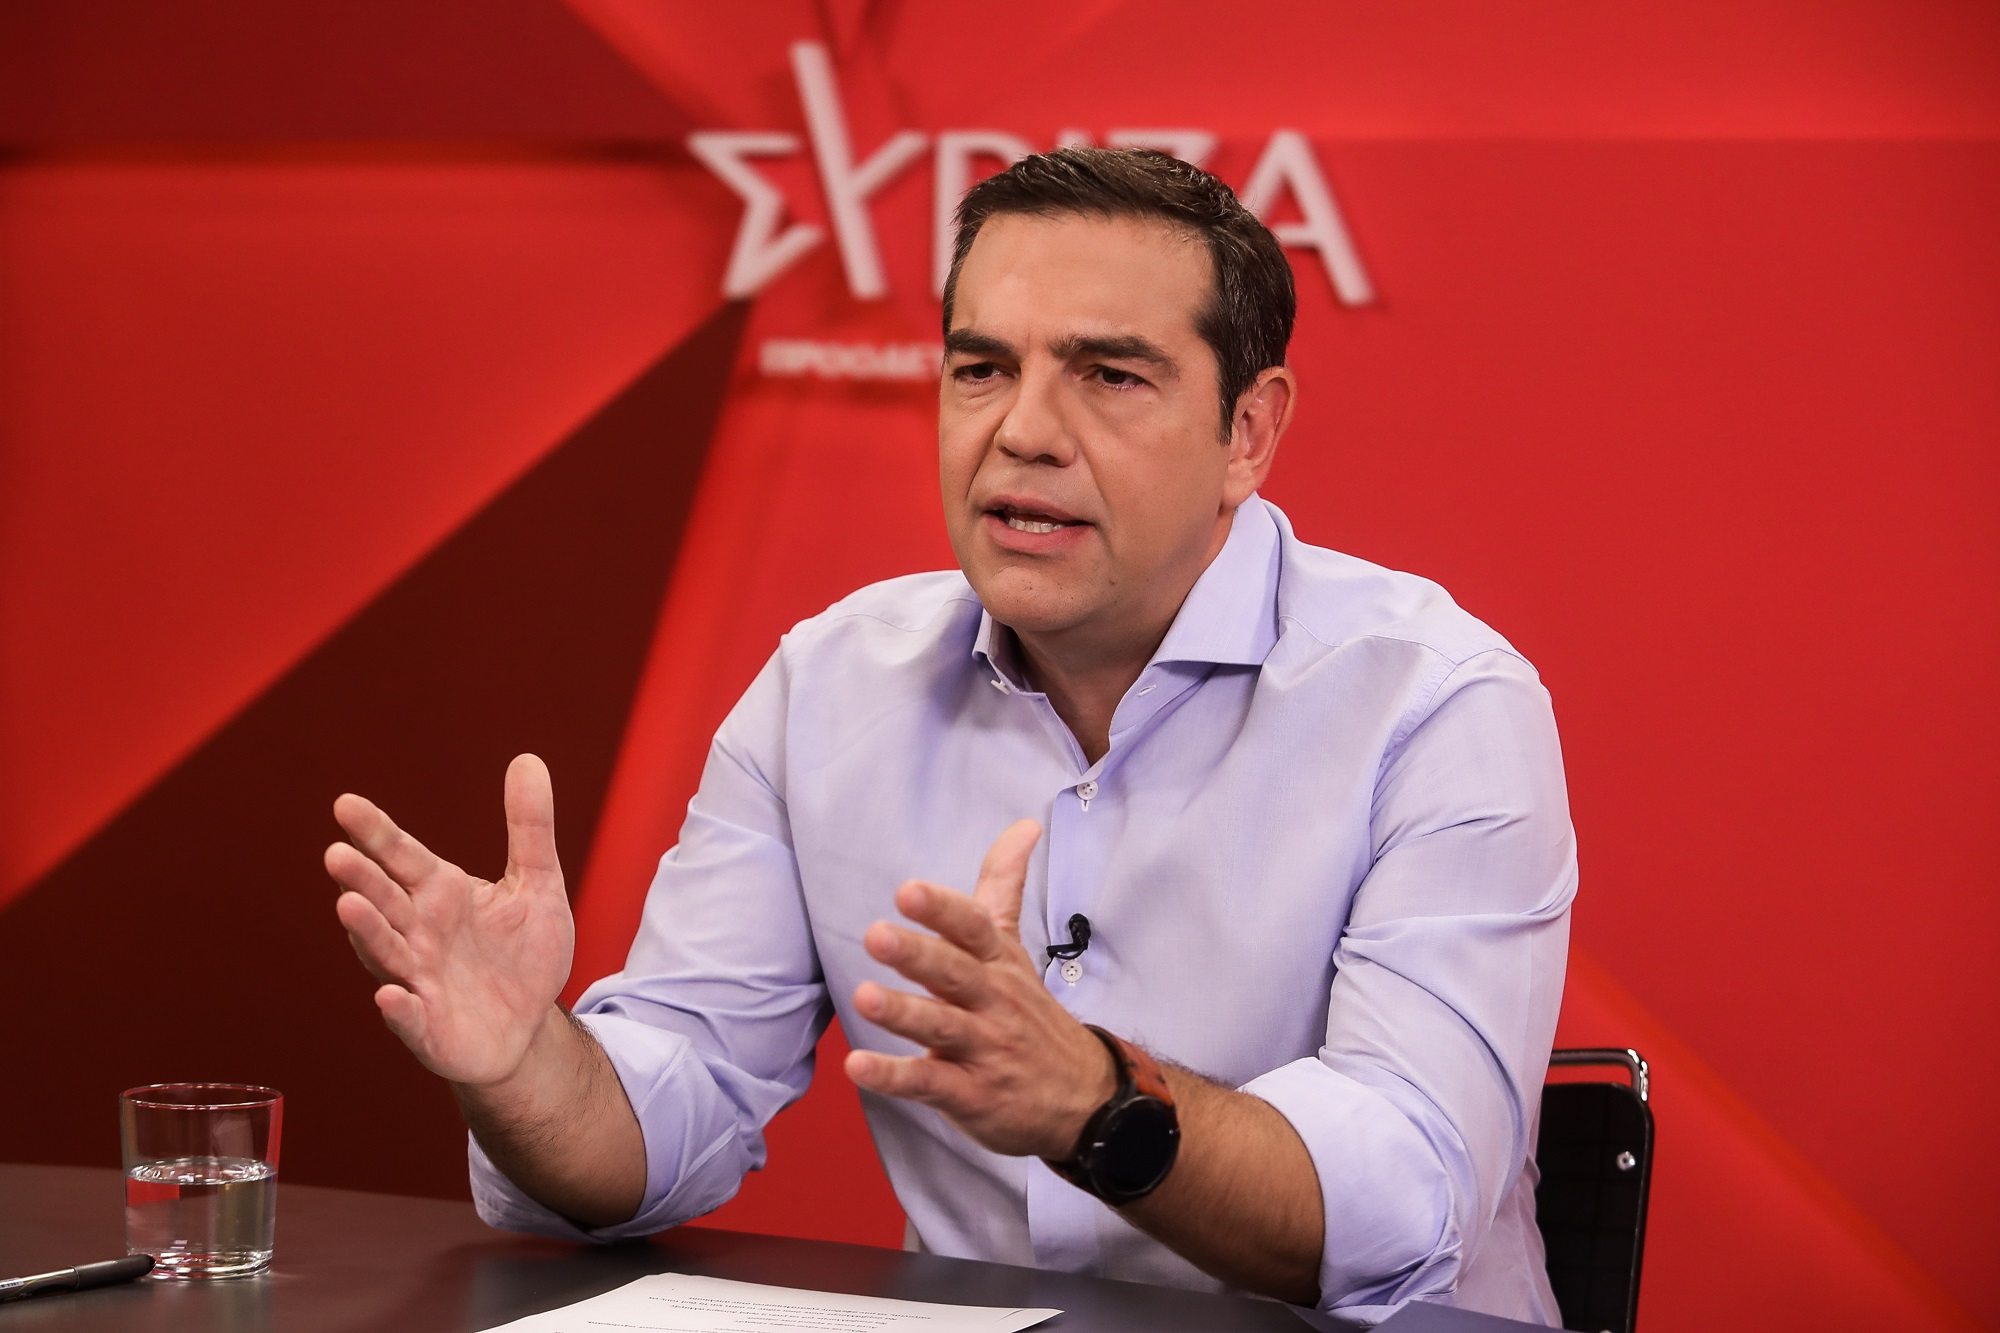 To πρόγραμμα του Α. Τσίπρα στη ΔΕΘ